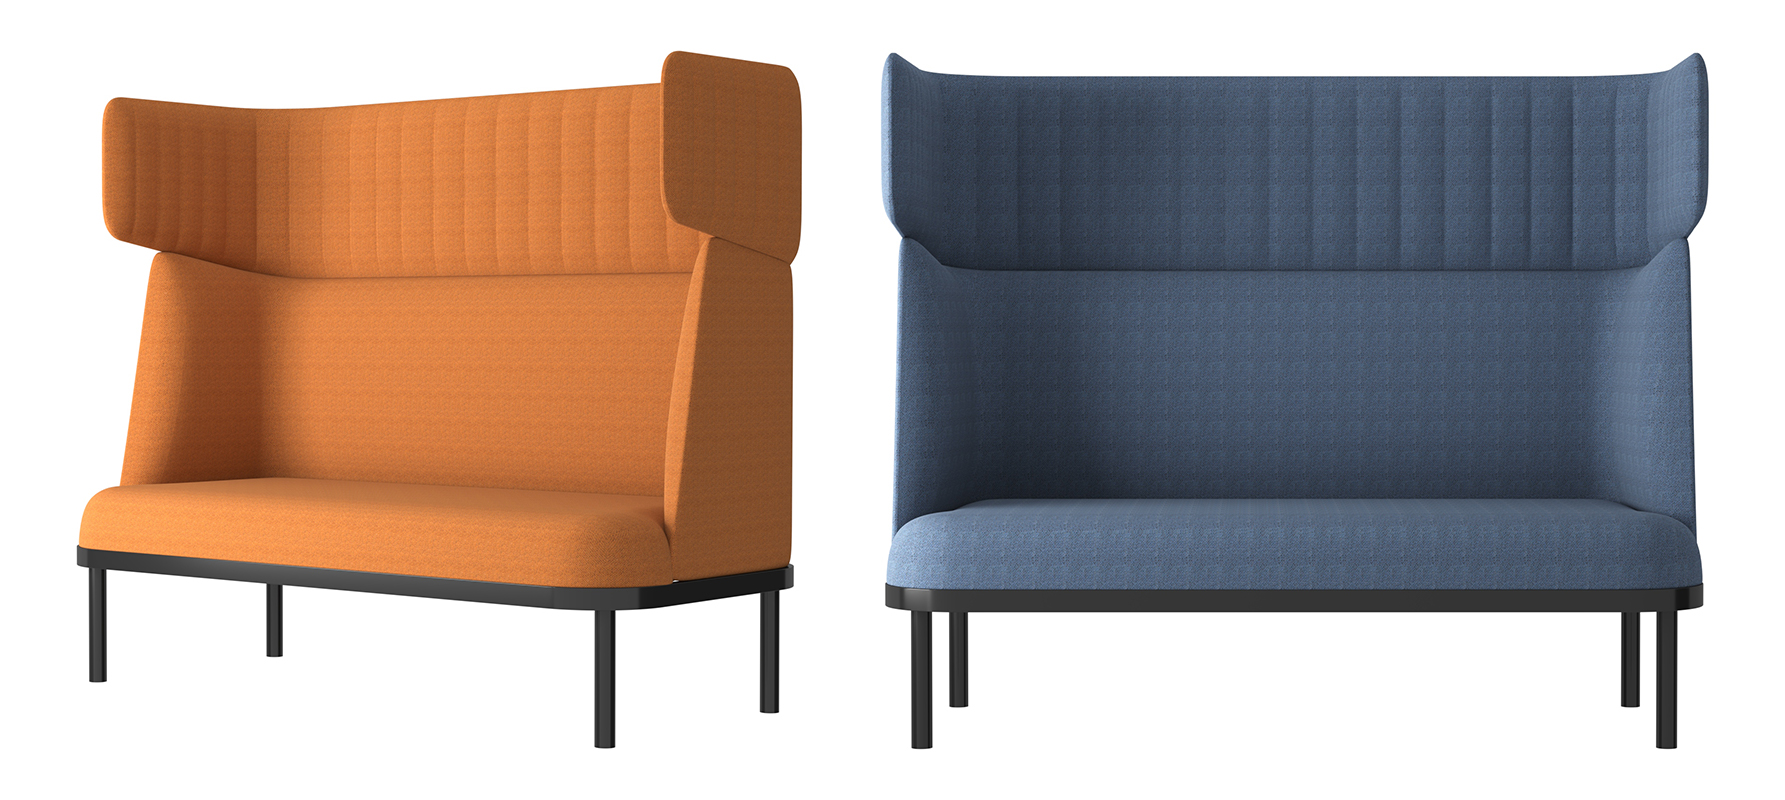 Image 2 for SHEEP DOUBLE SOFA BOOTH BY ARCHINI